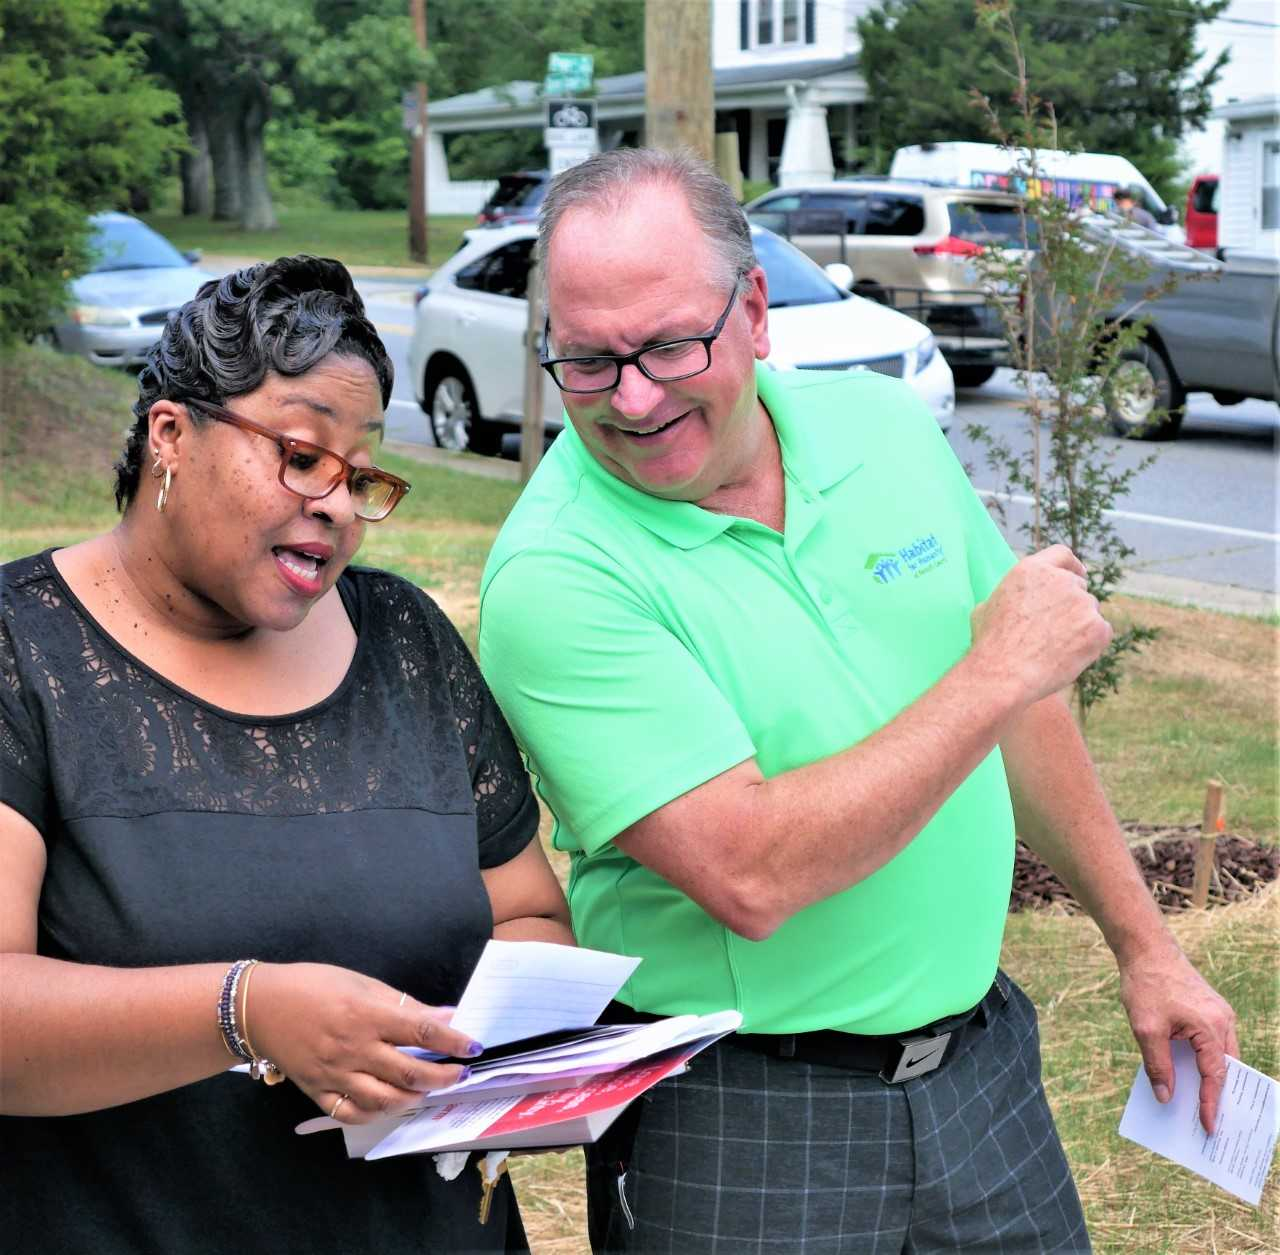 Khadijah Shabazz, left, and Mike Campbell, executive director of Habitat for Humanity of Forsyth County, lead the dedication of a new home in Winston-Salem for Shabazz and her daughter Sakile.